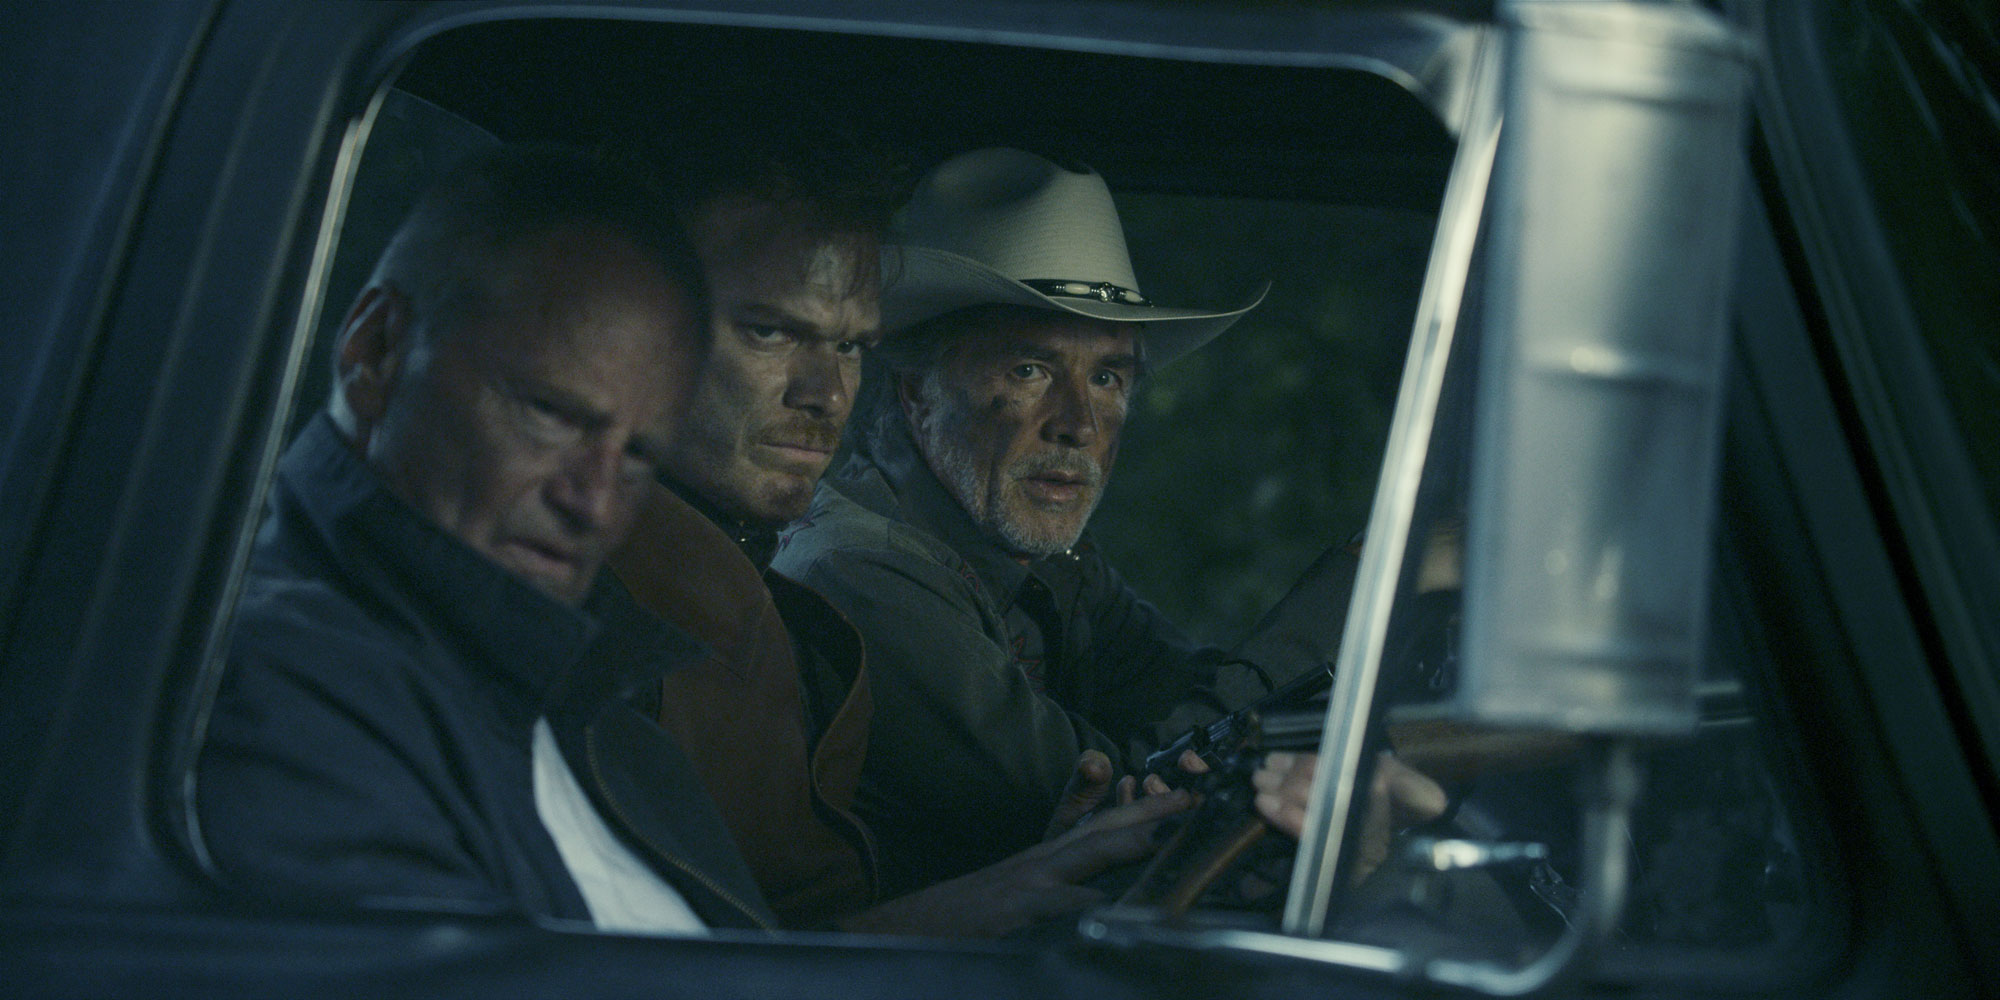 Cold In July - Michael C. Hall, Don Johnson, Sam Shepard